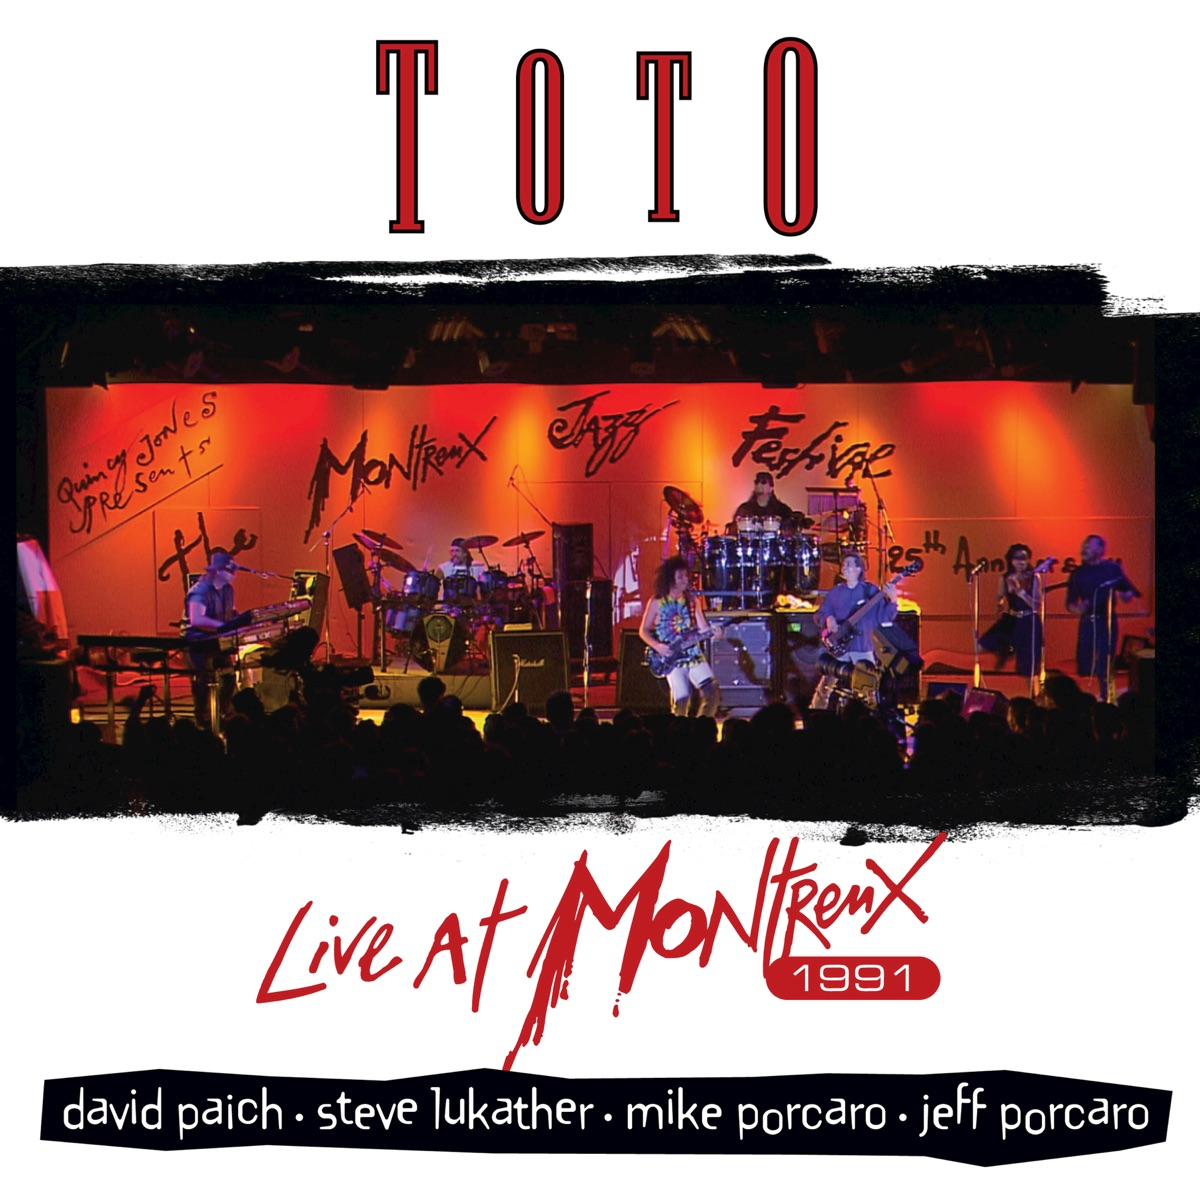 Live at Montreux 1991 Album Cover by Toto